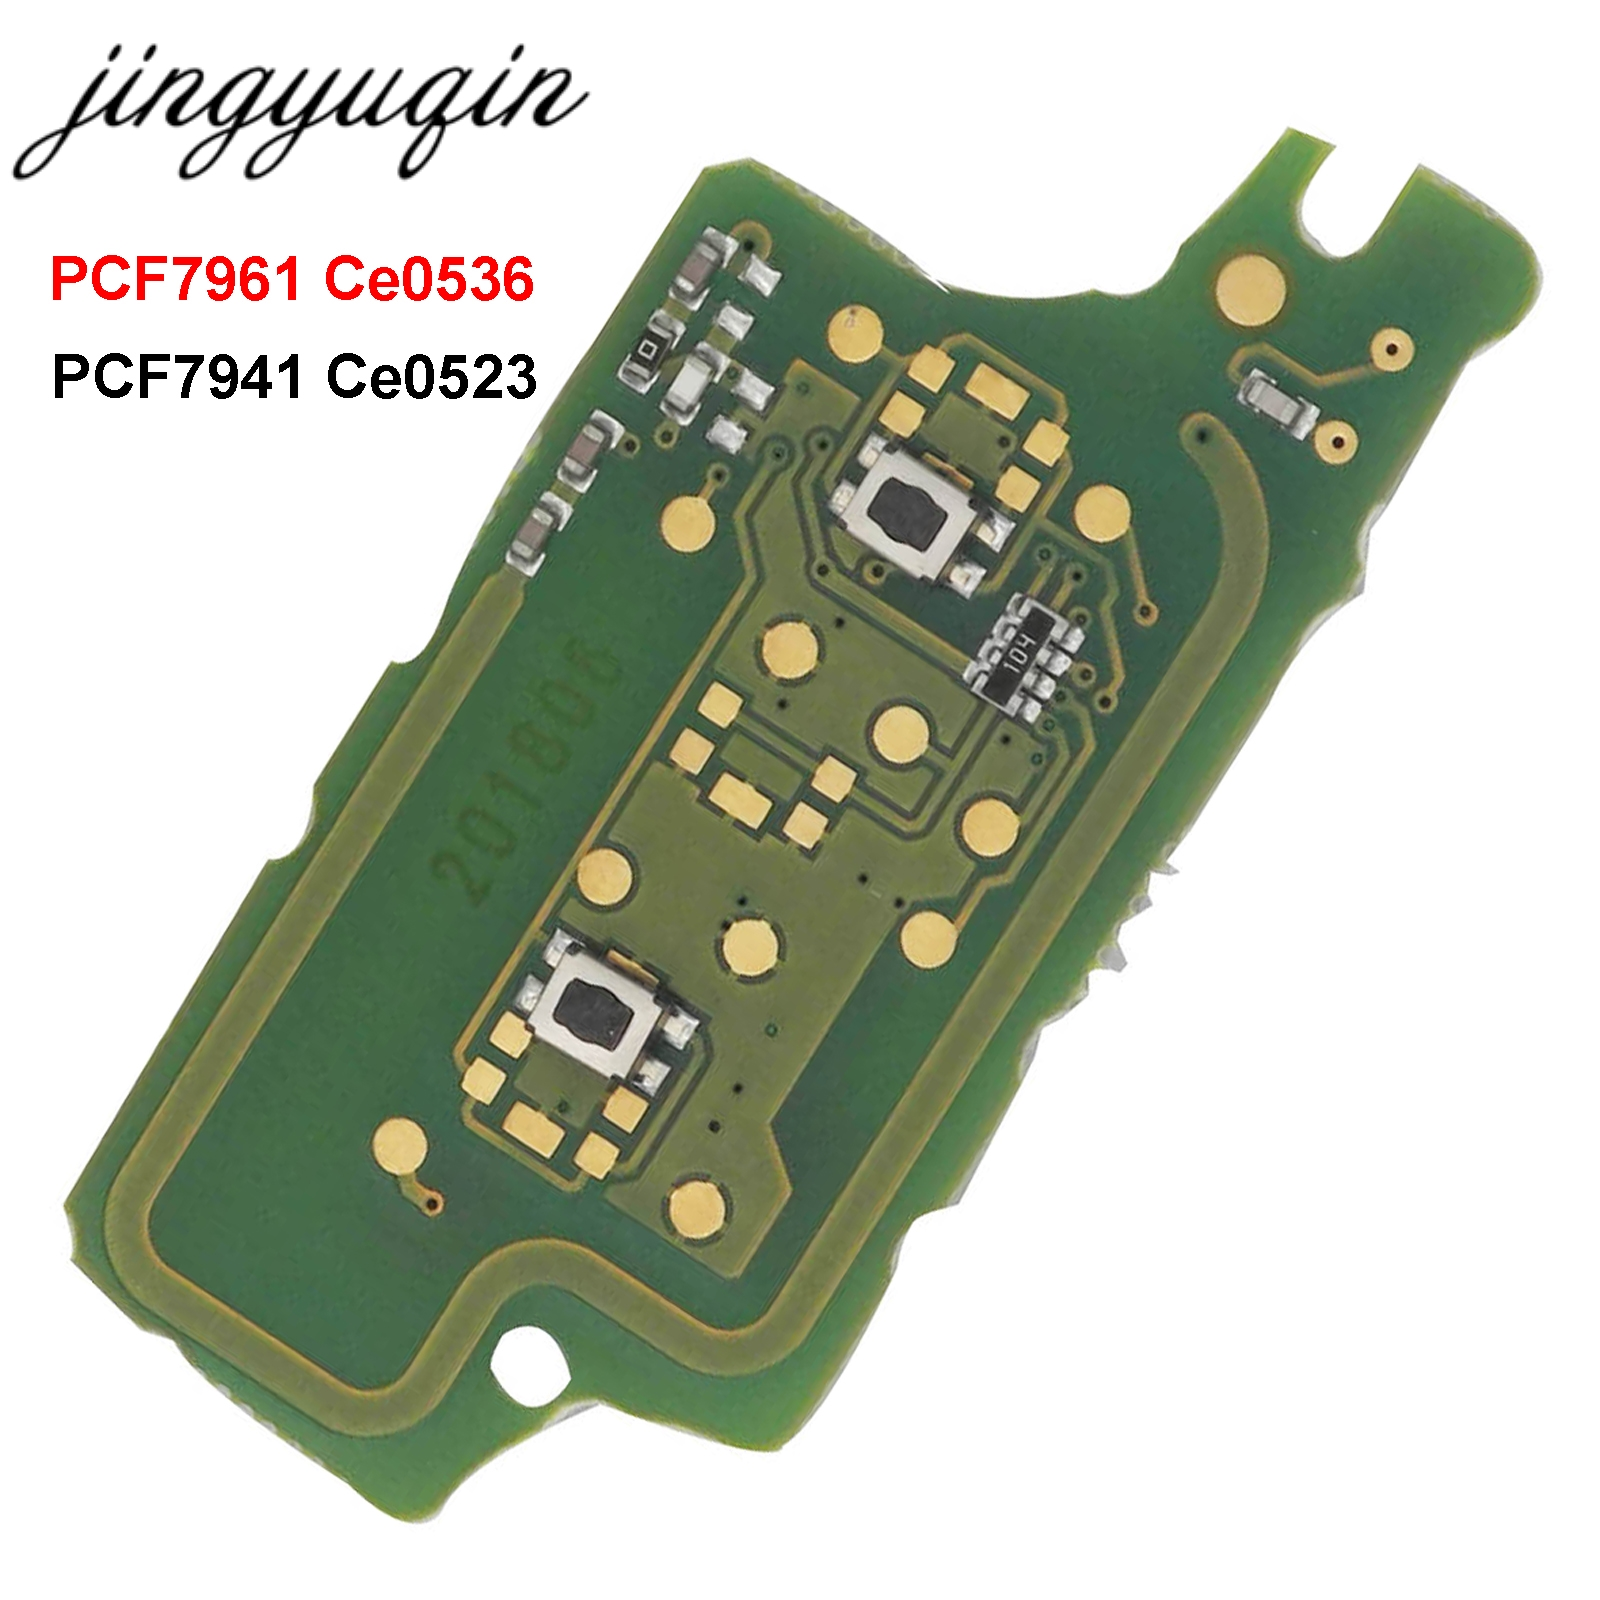 jingyuqin ASK 2B Remote Flip Car Key Electronic Board For Peugeot 307 308 408 407 207 Citroen C2 C3 C4 PICASSO ID46 CE0536/523-in Car Key from Automobiles & Motorcycles